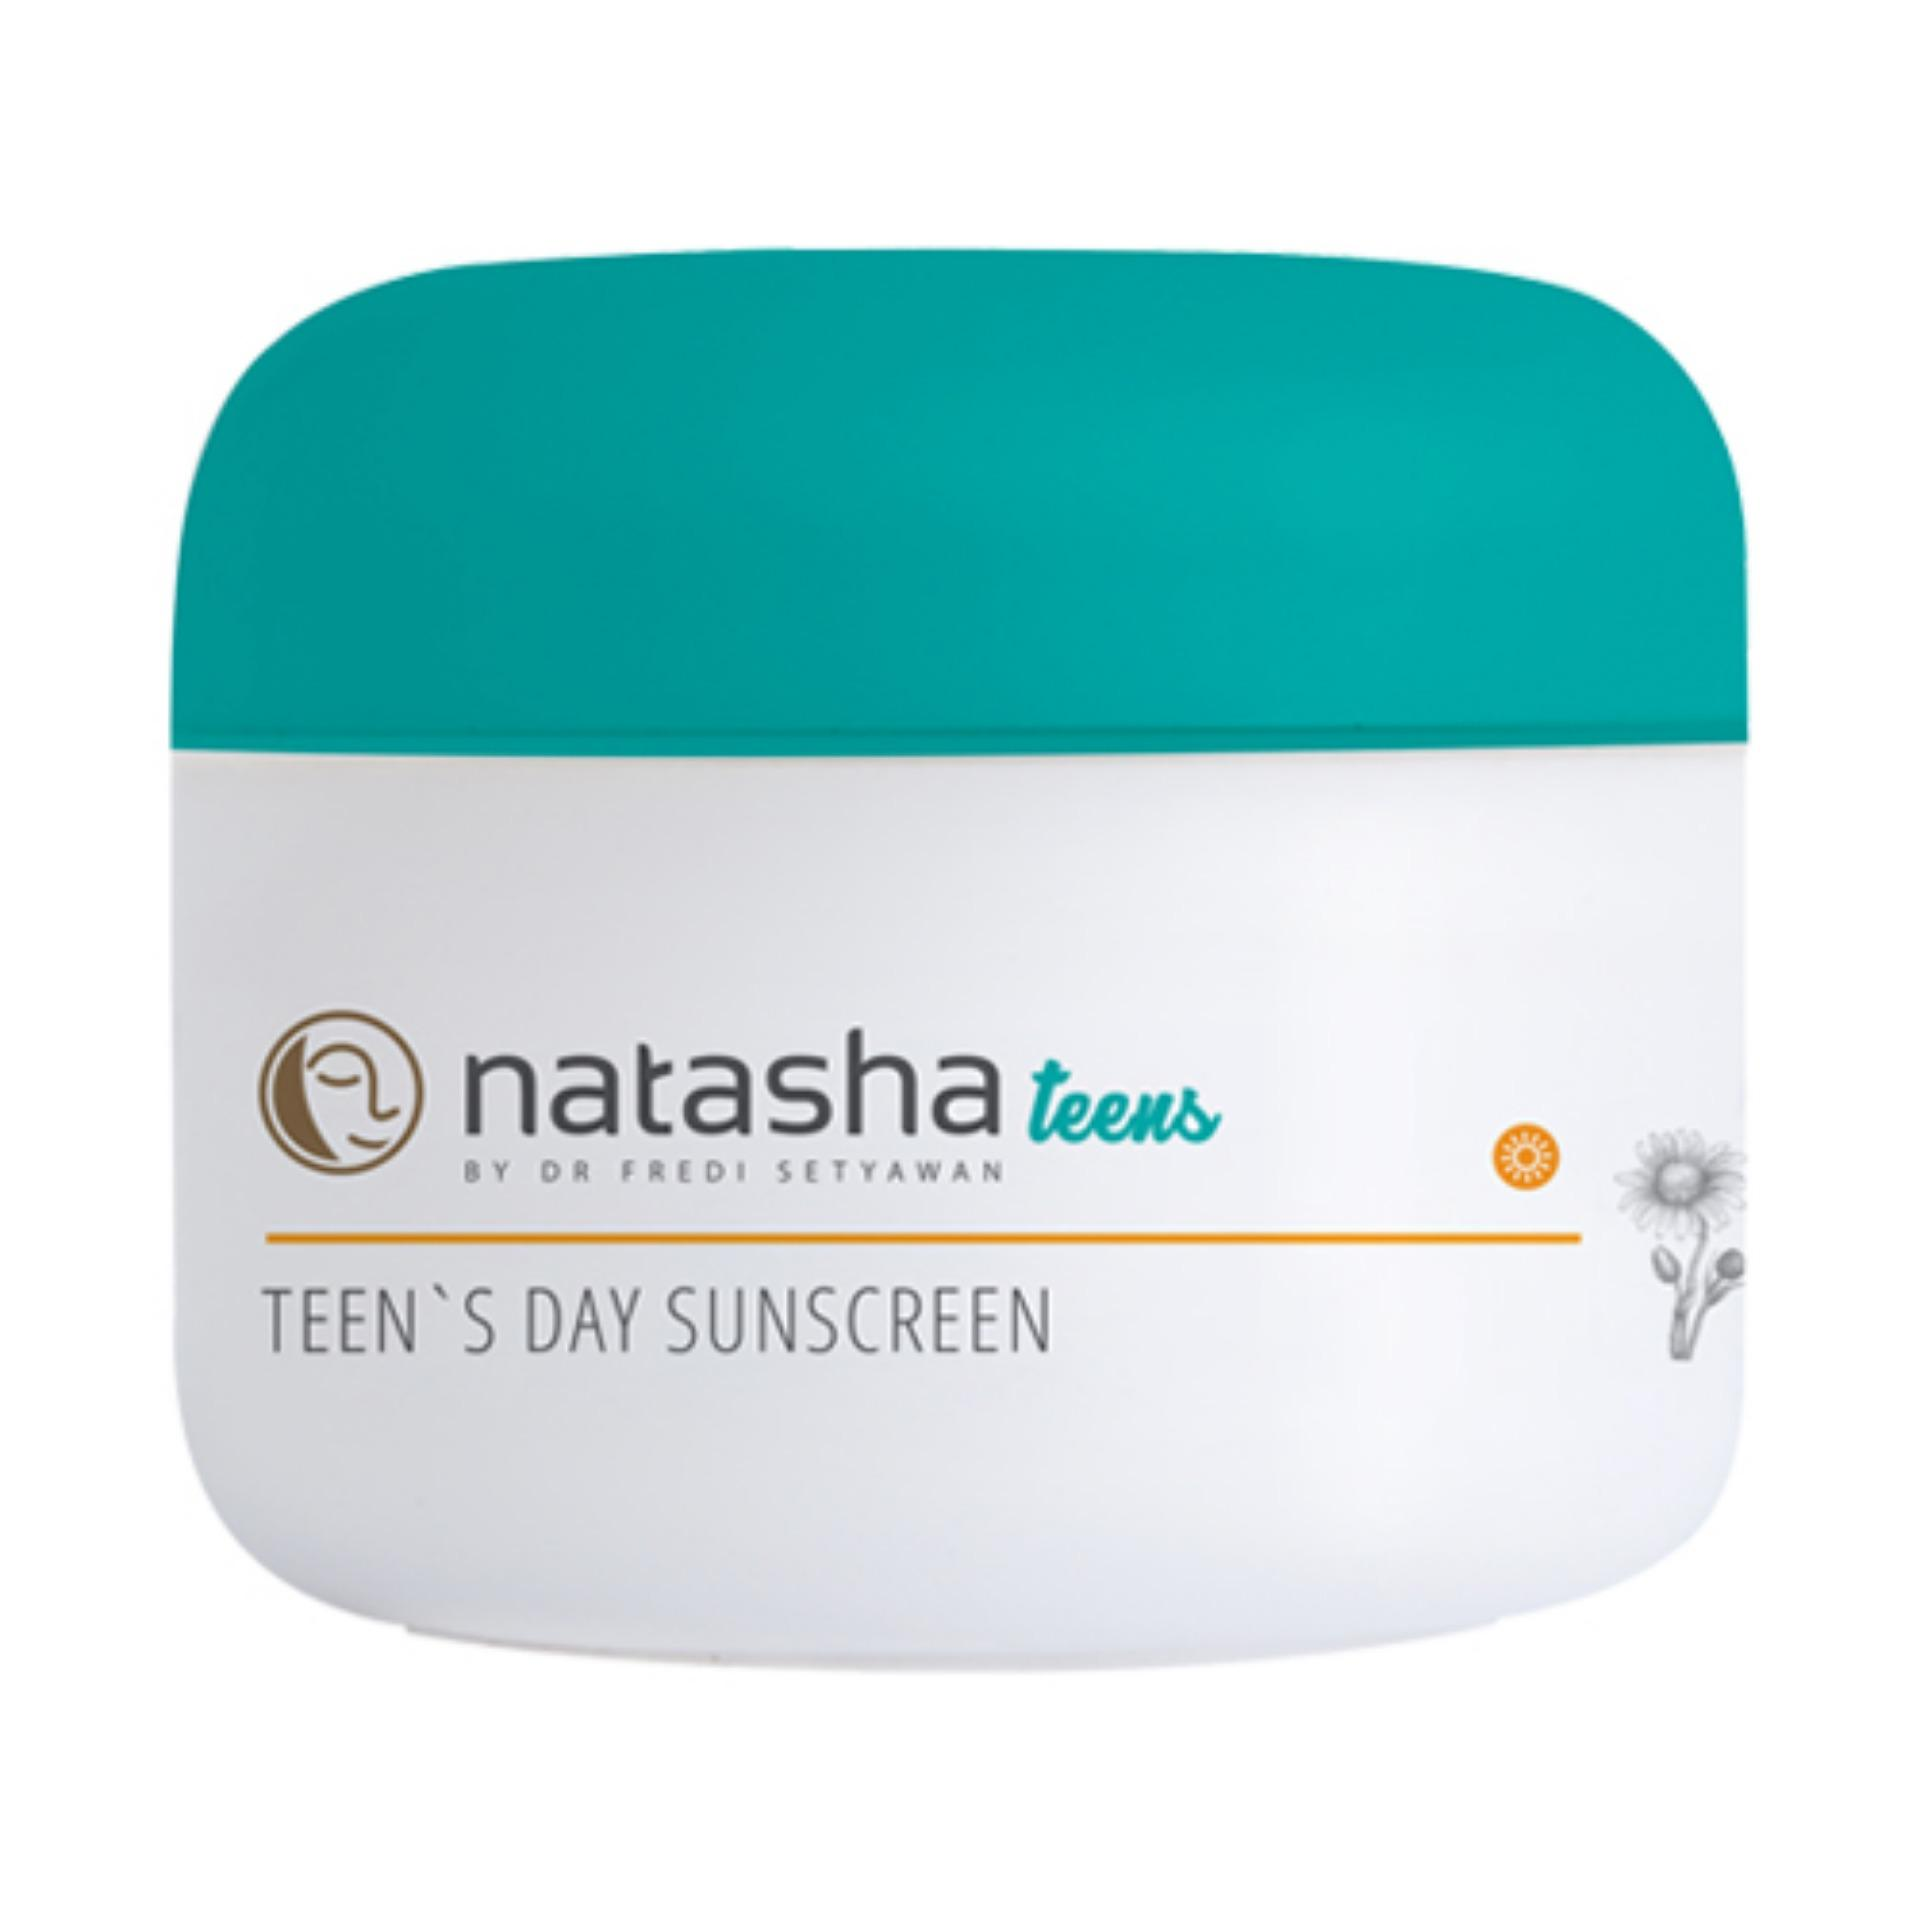 Natasha By Dr Fredi Setyawan Teens Day Sunscreen By Natasha Skin Clinic Centre.